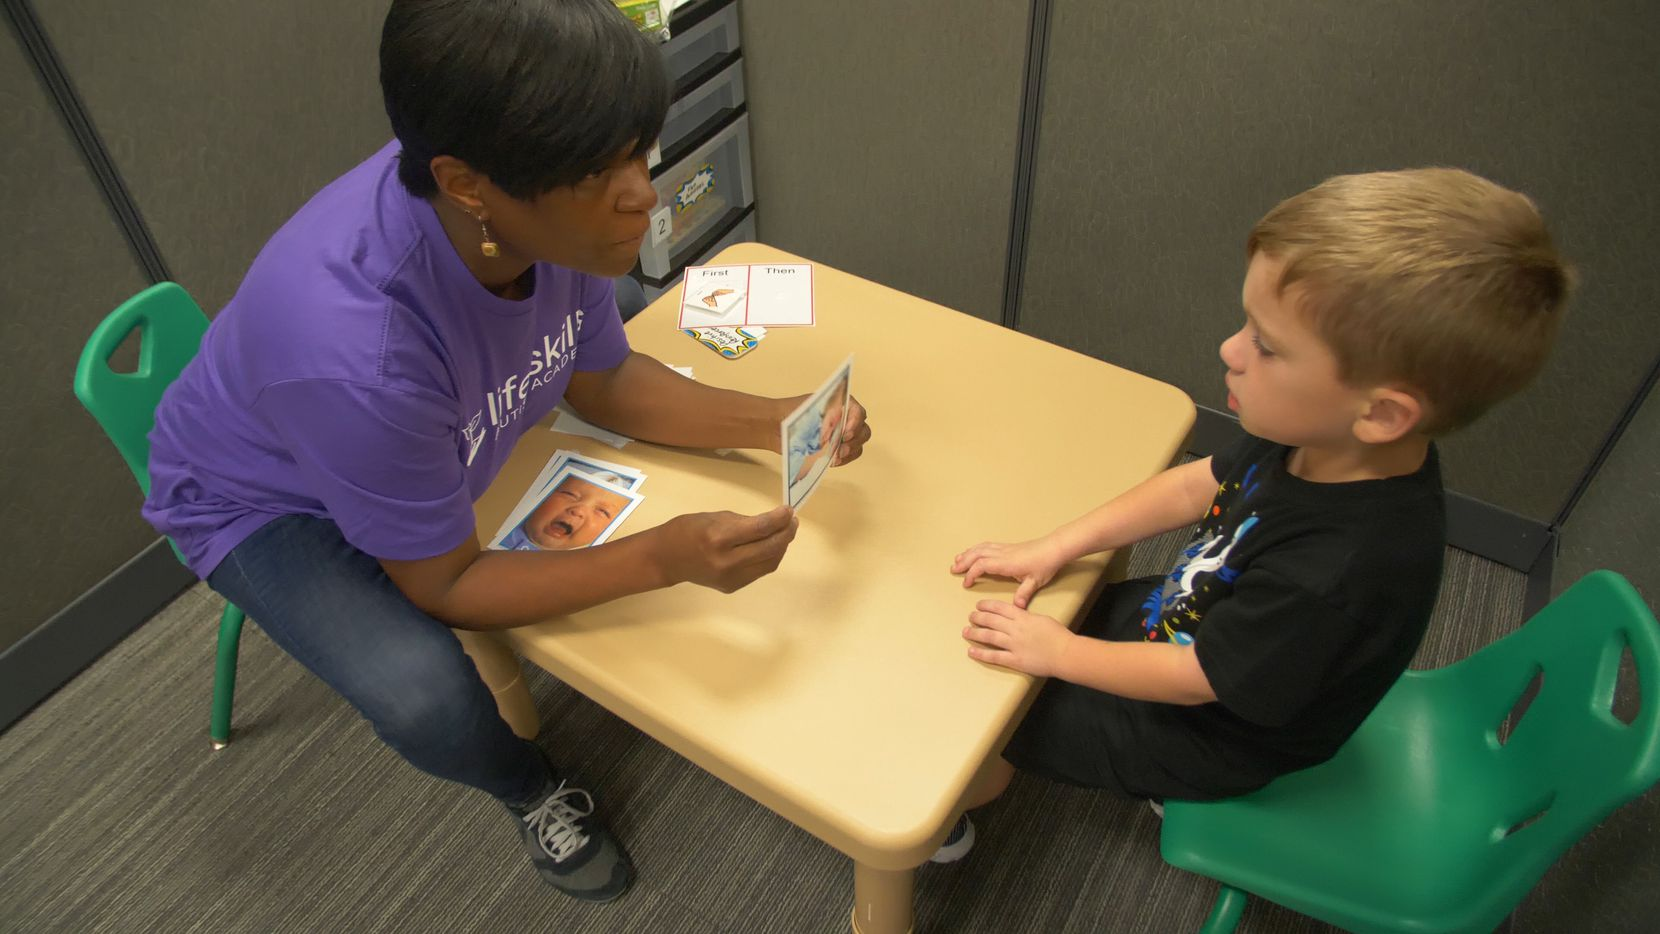 A therapist provides one-on-one lessons for a Life Skills Autism Academy client.